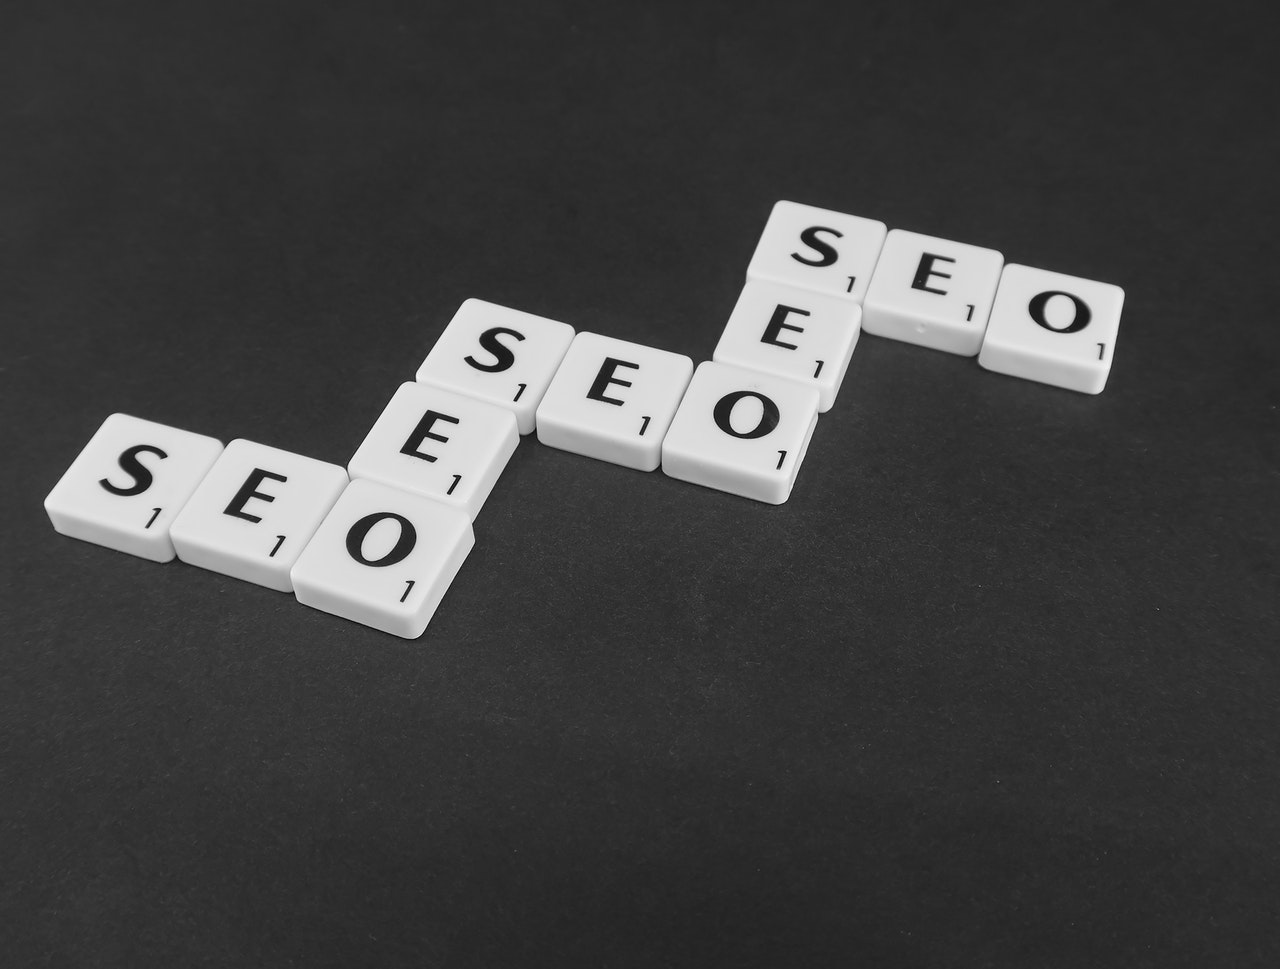 Keyword Research to Build Your Online Business